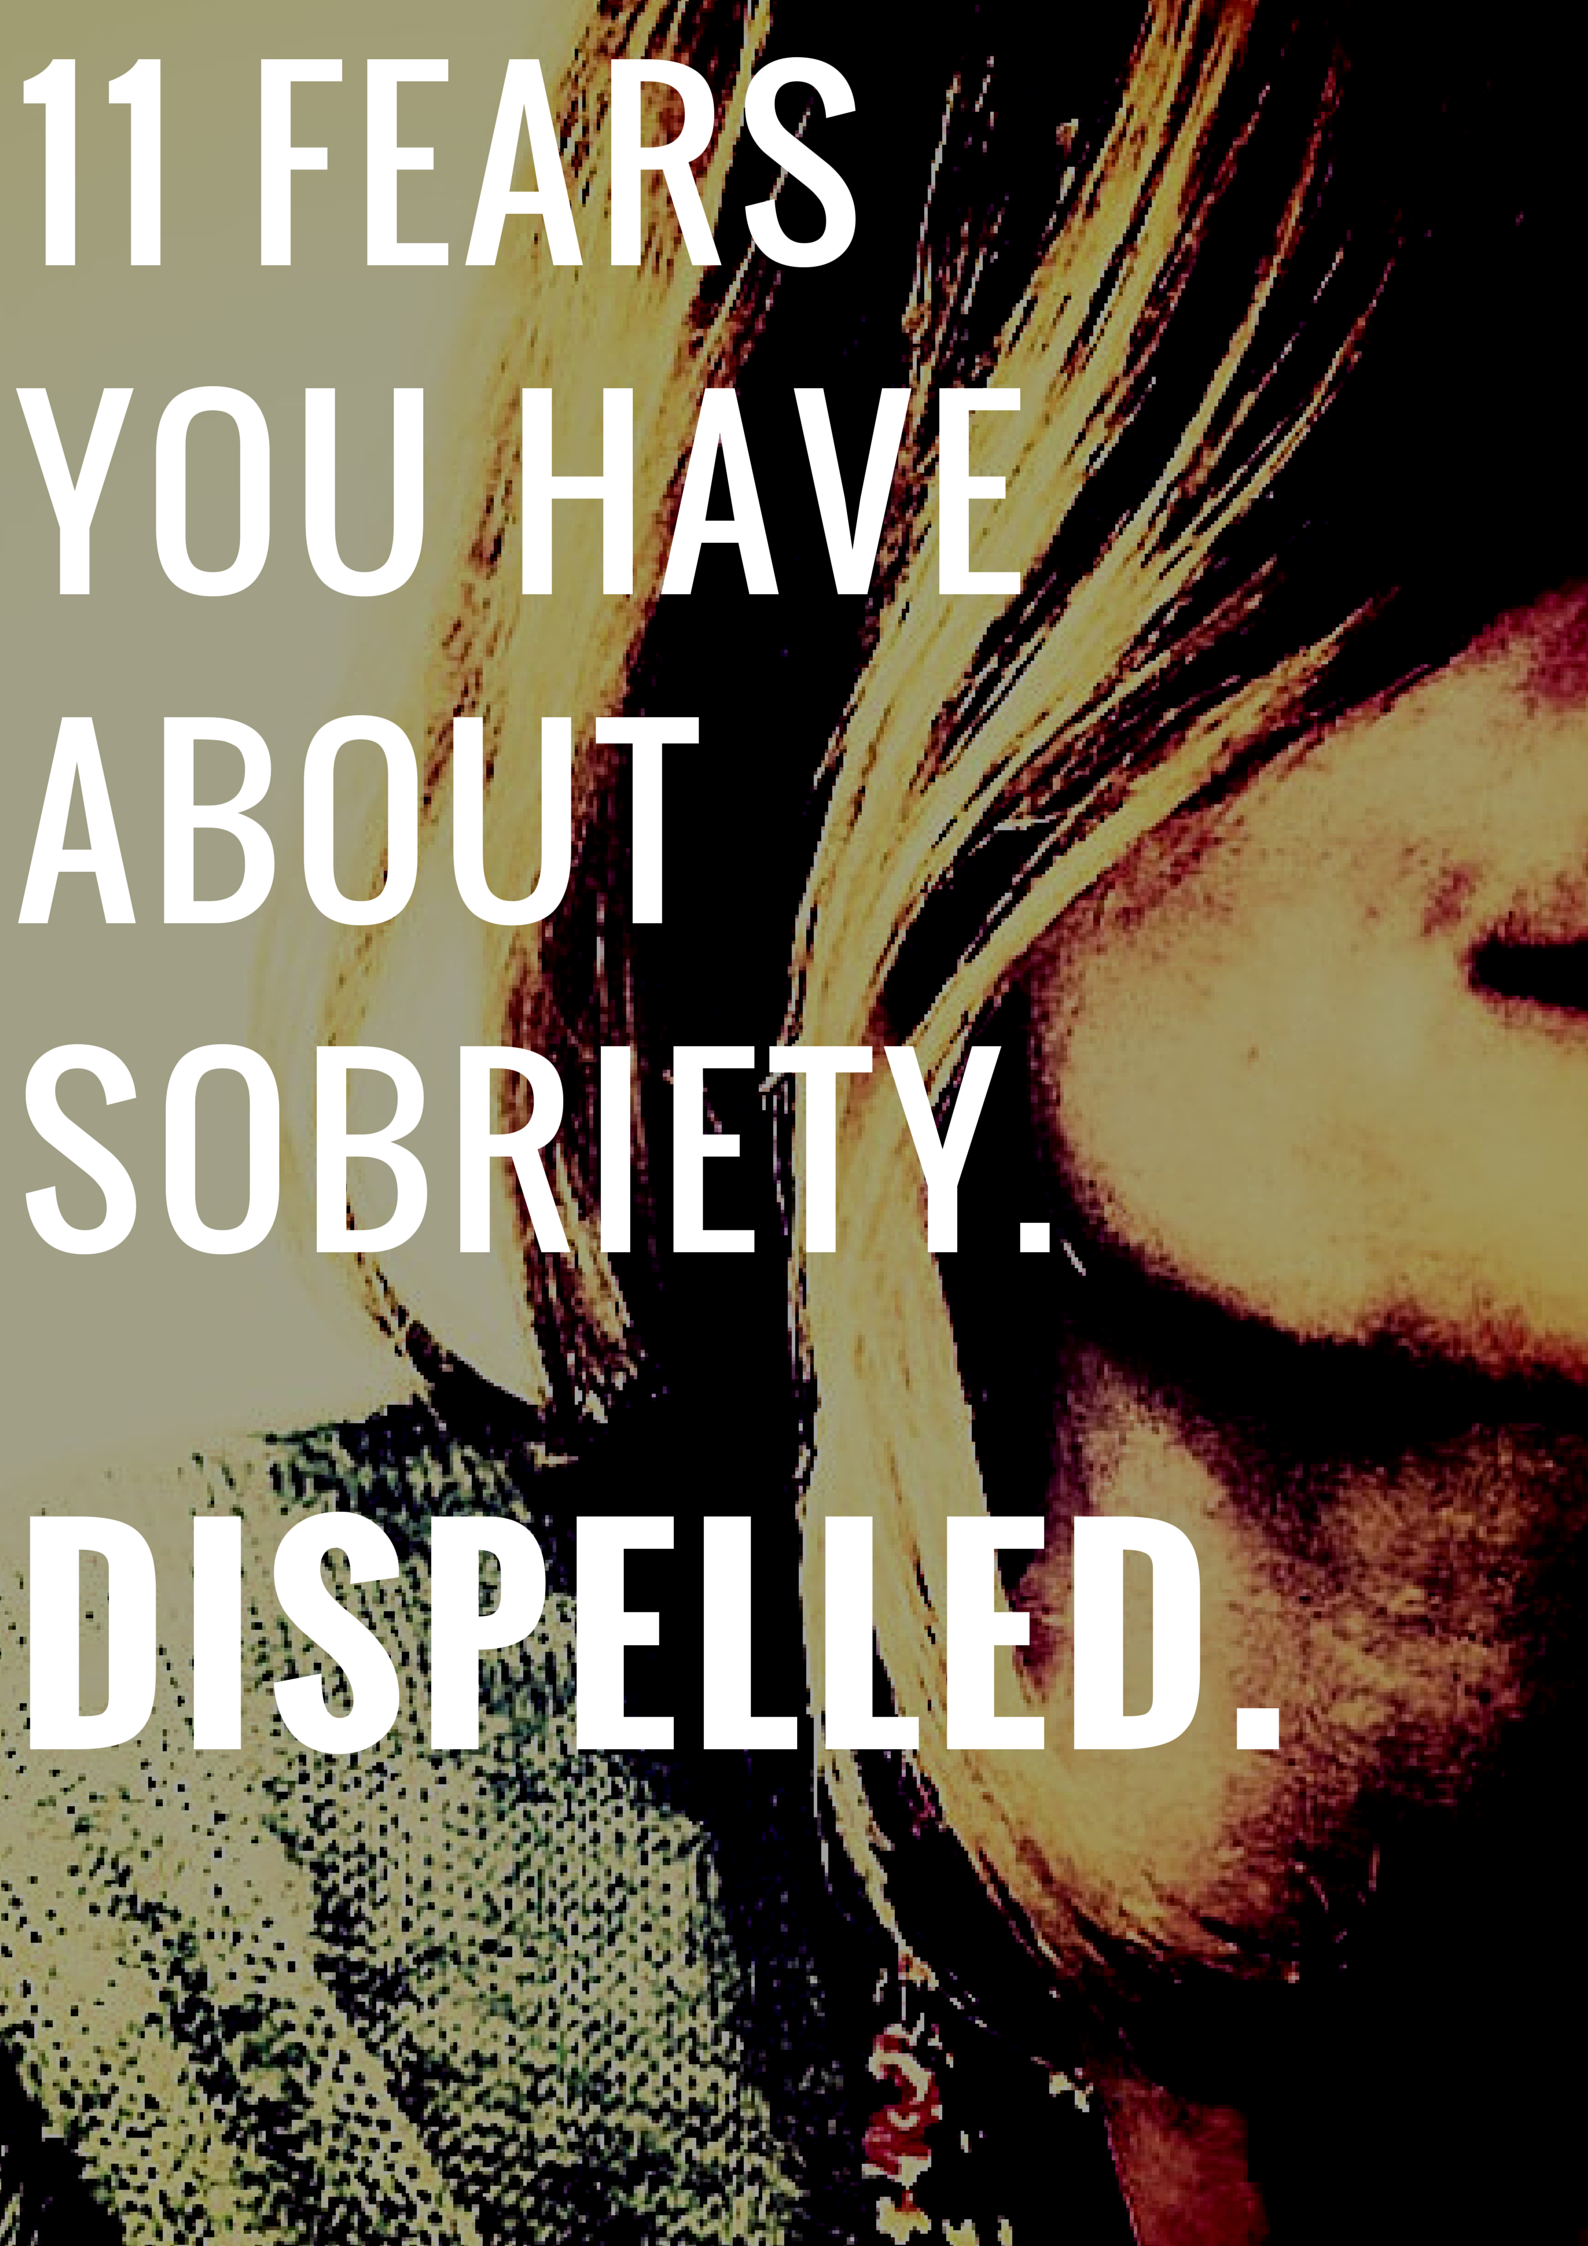 11 FEARS YOU HAVE ABOUT SOBRIETY. DISPELLED